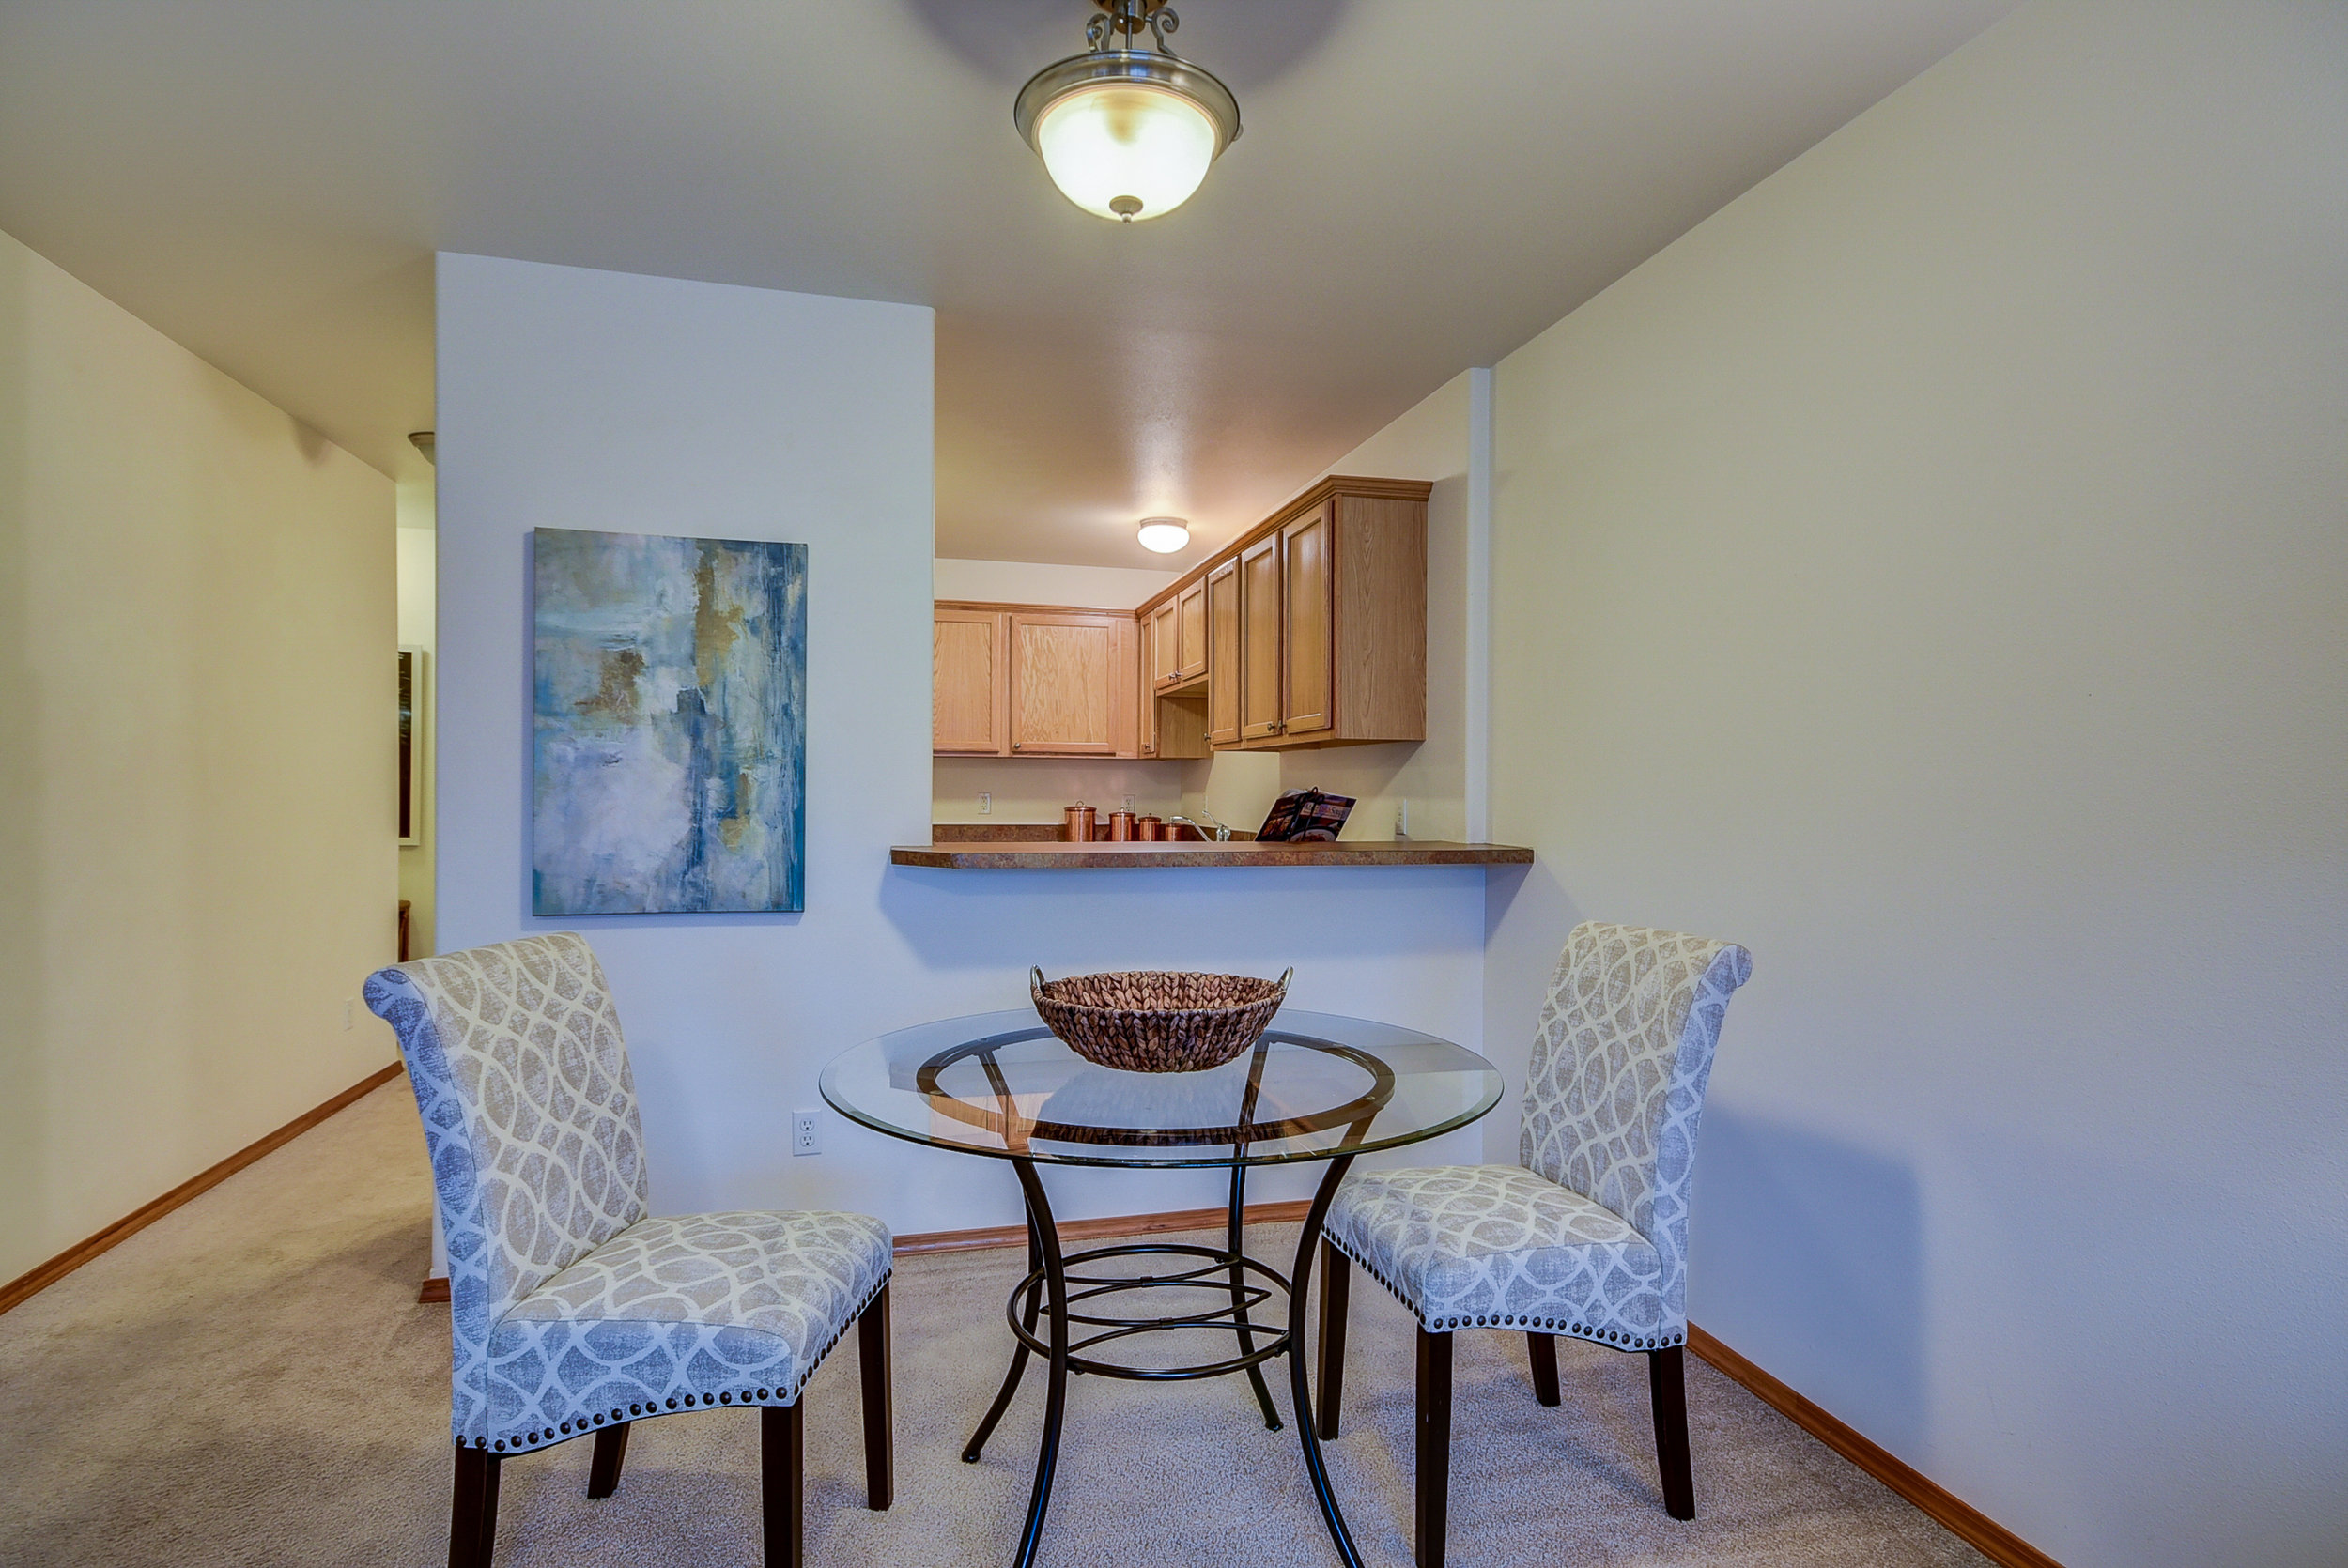 Whether casual or formal, there is room for both in this dining space!